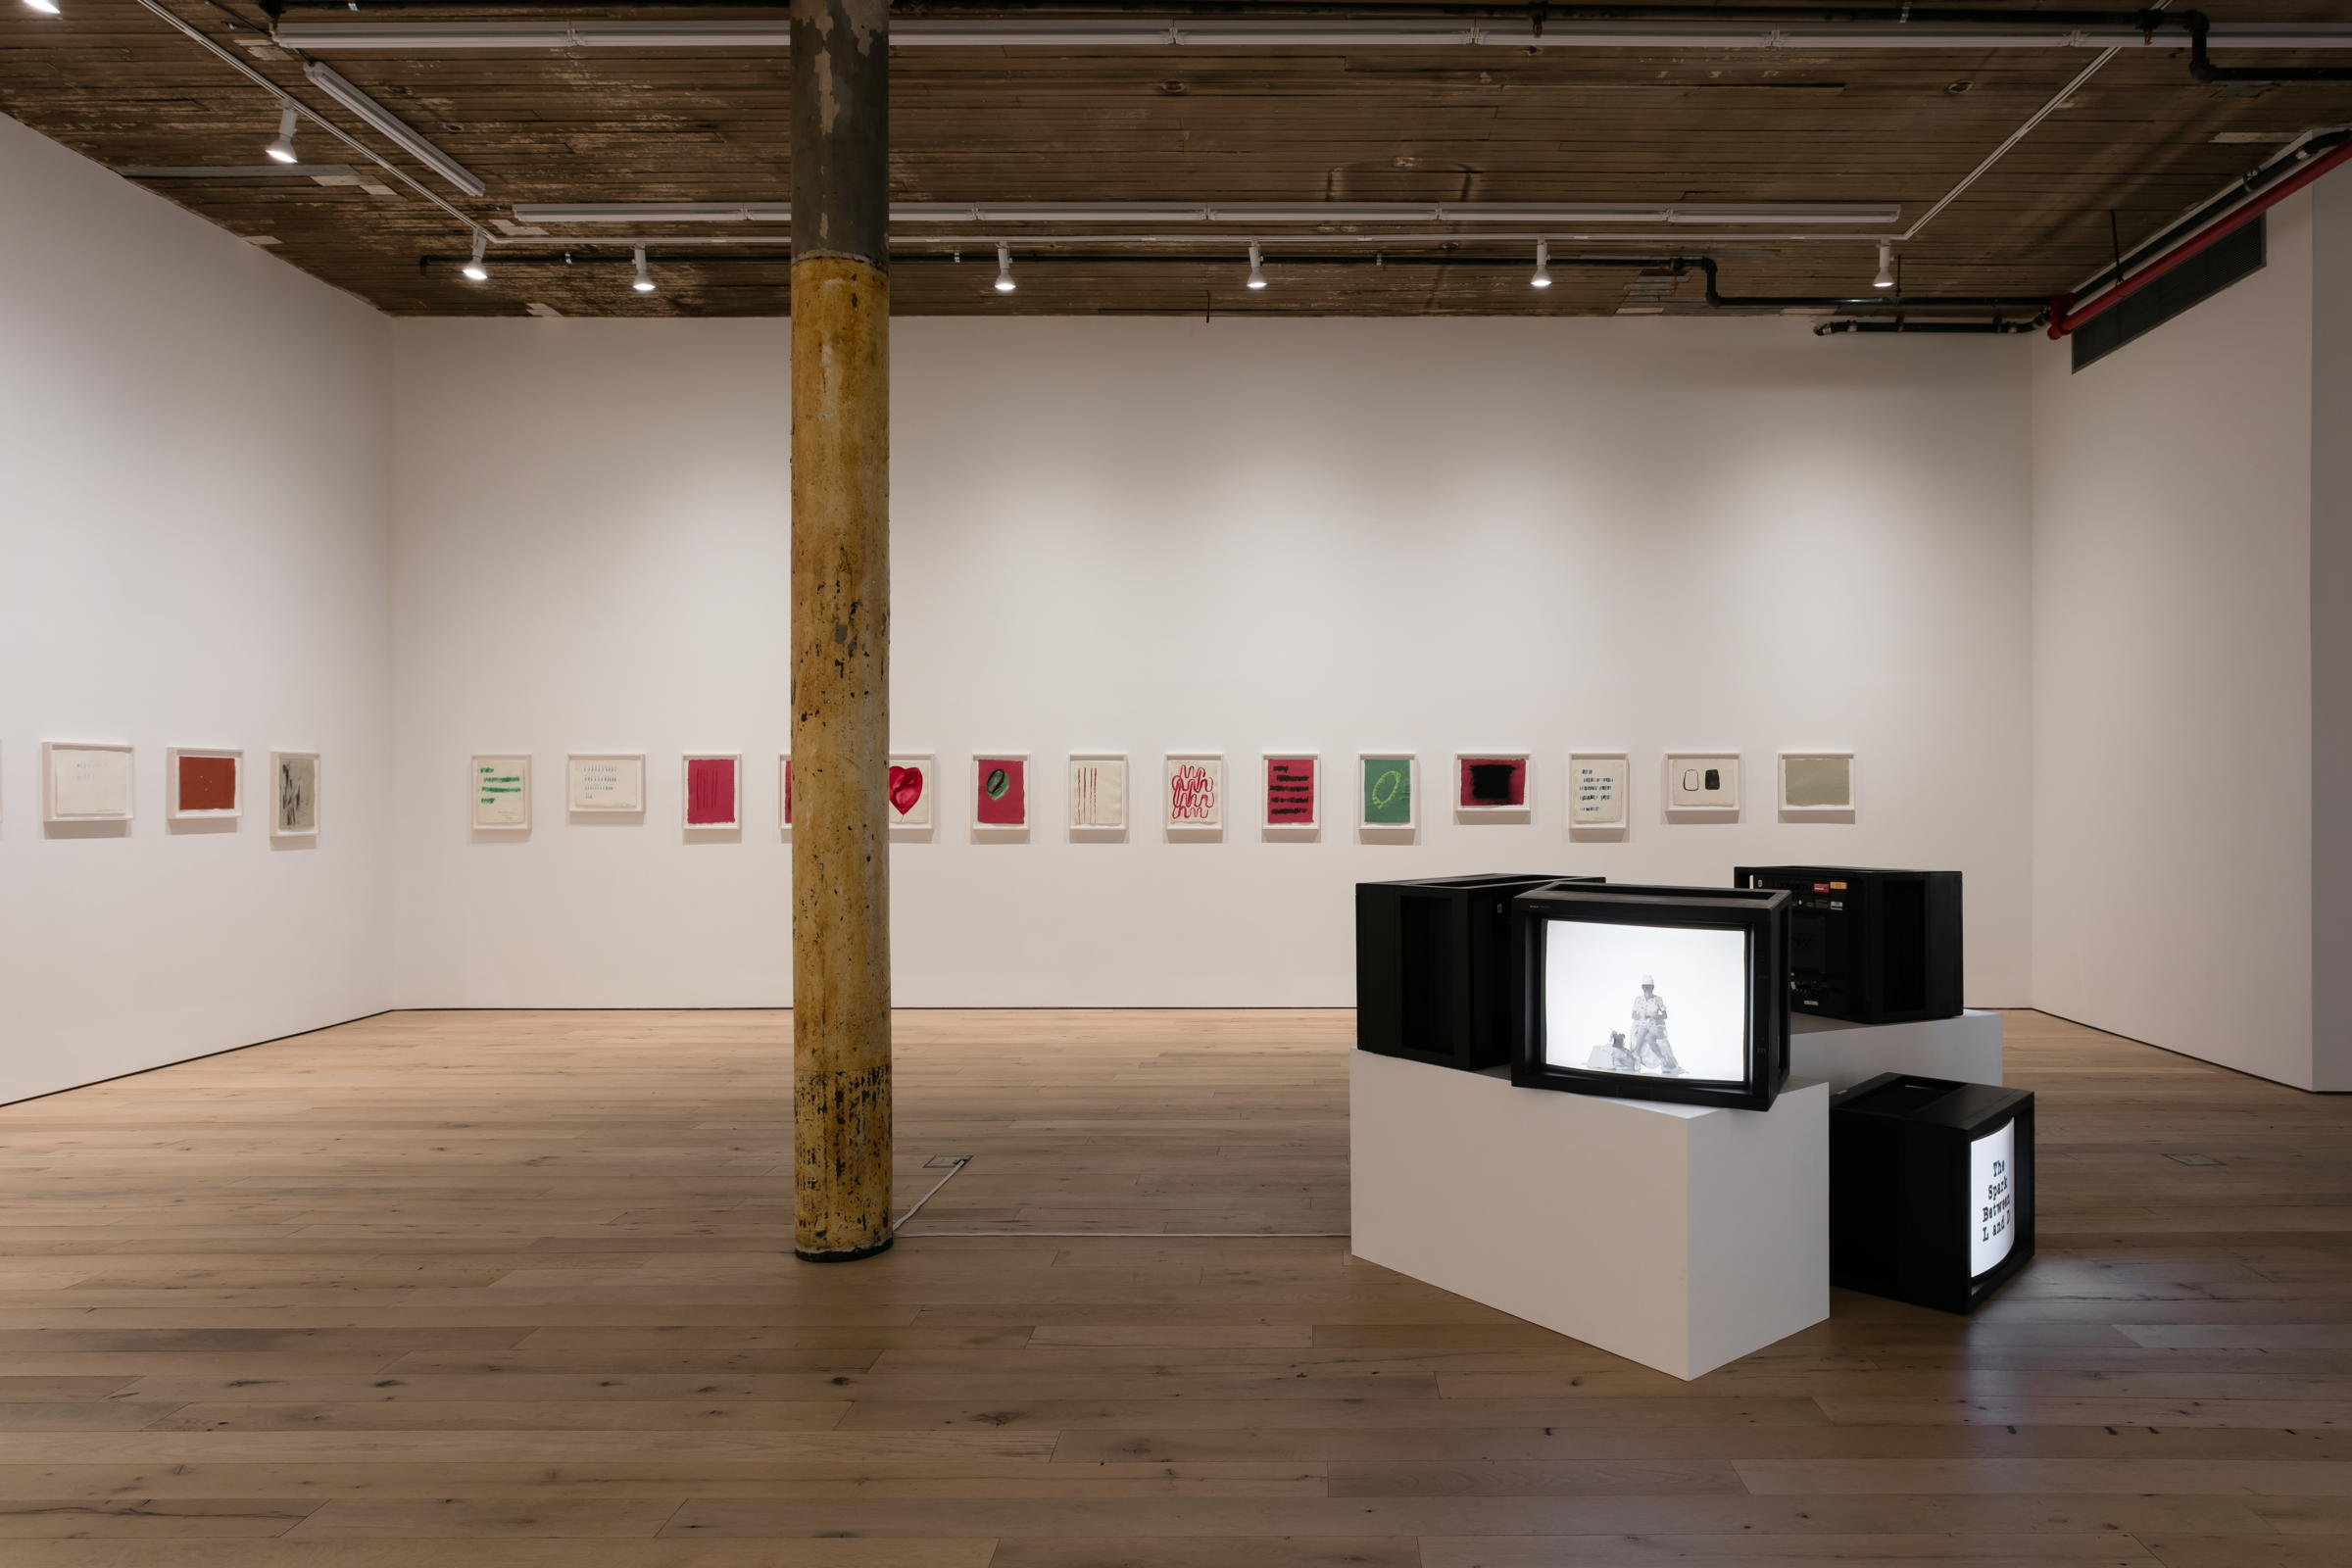 Installation view,  A Year of Firsts,  Martos Gallery, New York, 2017 - 2018